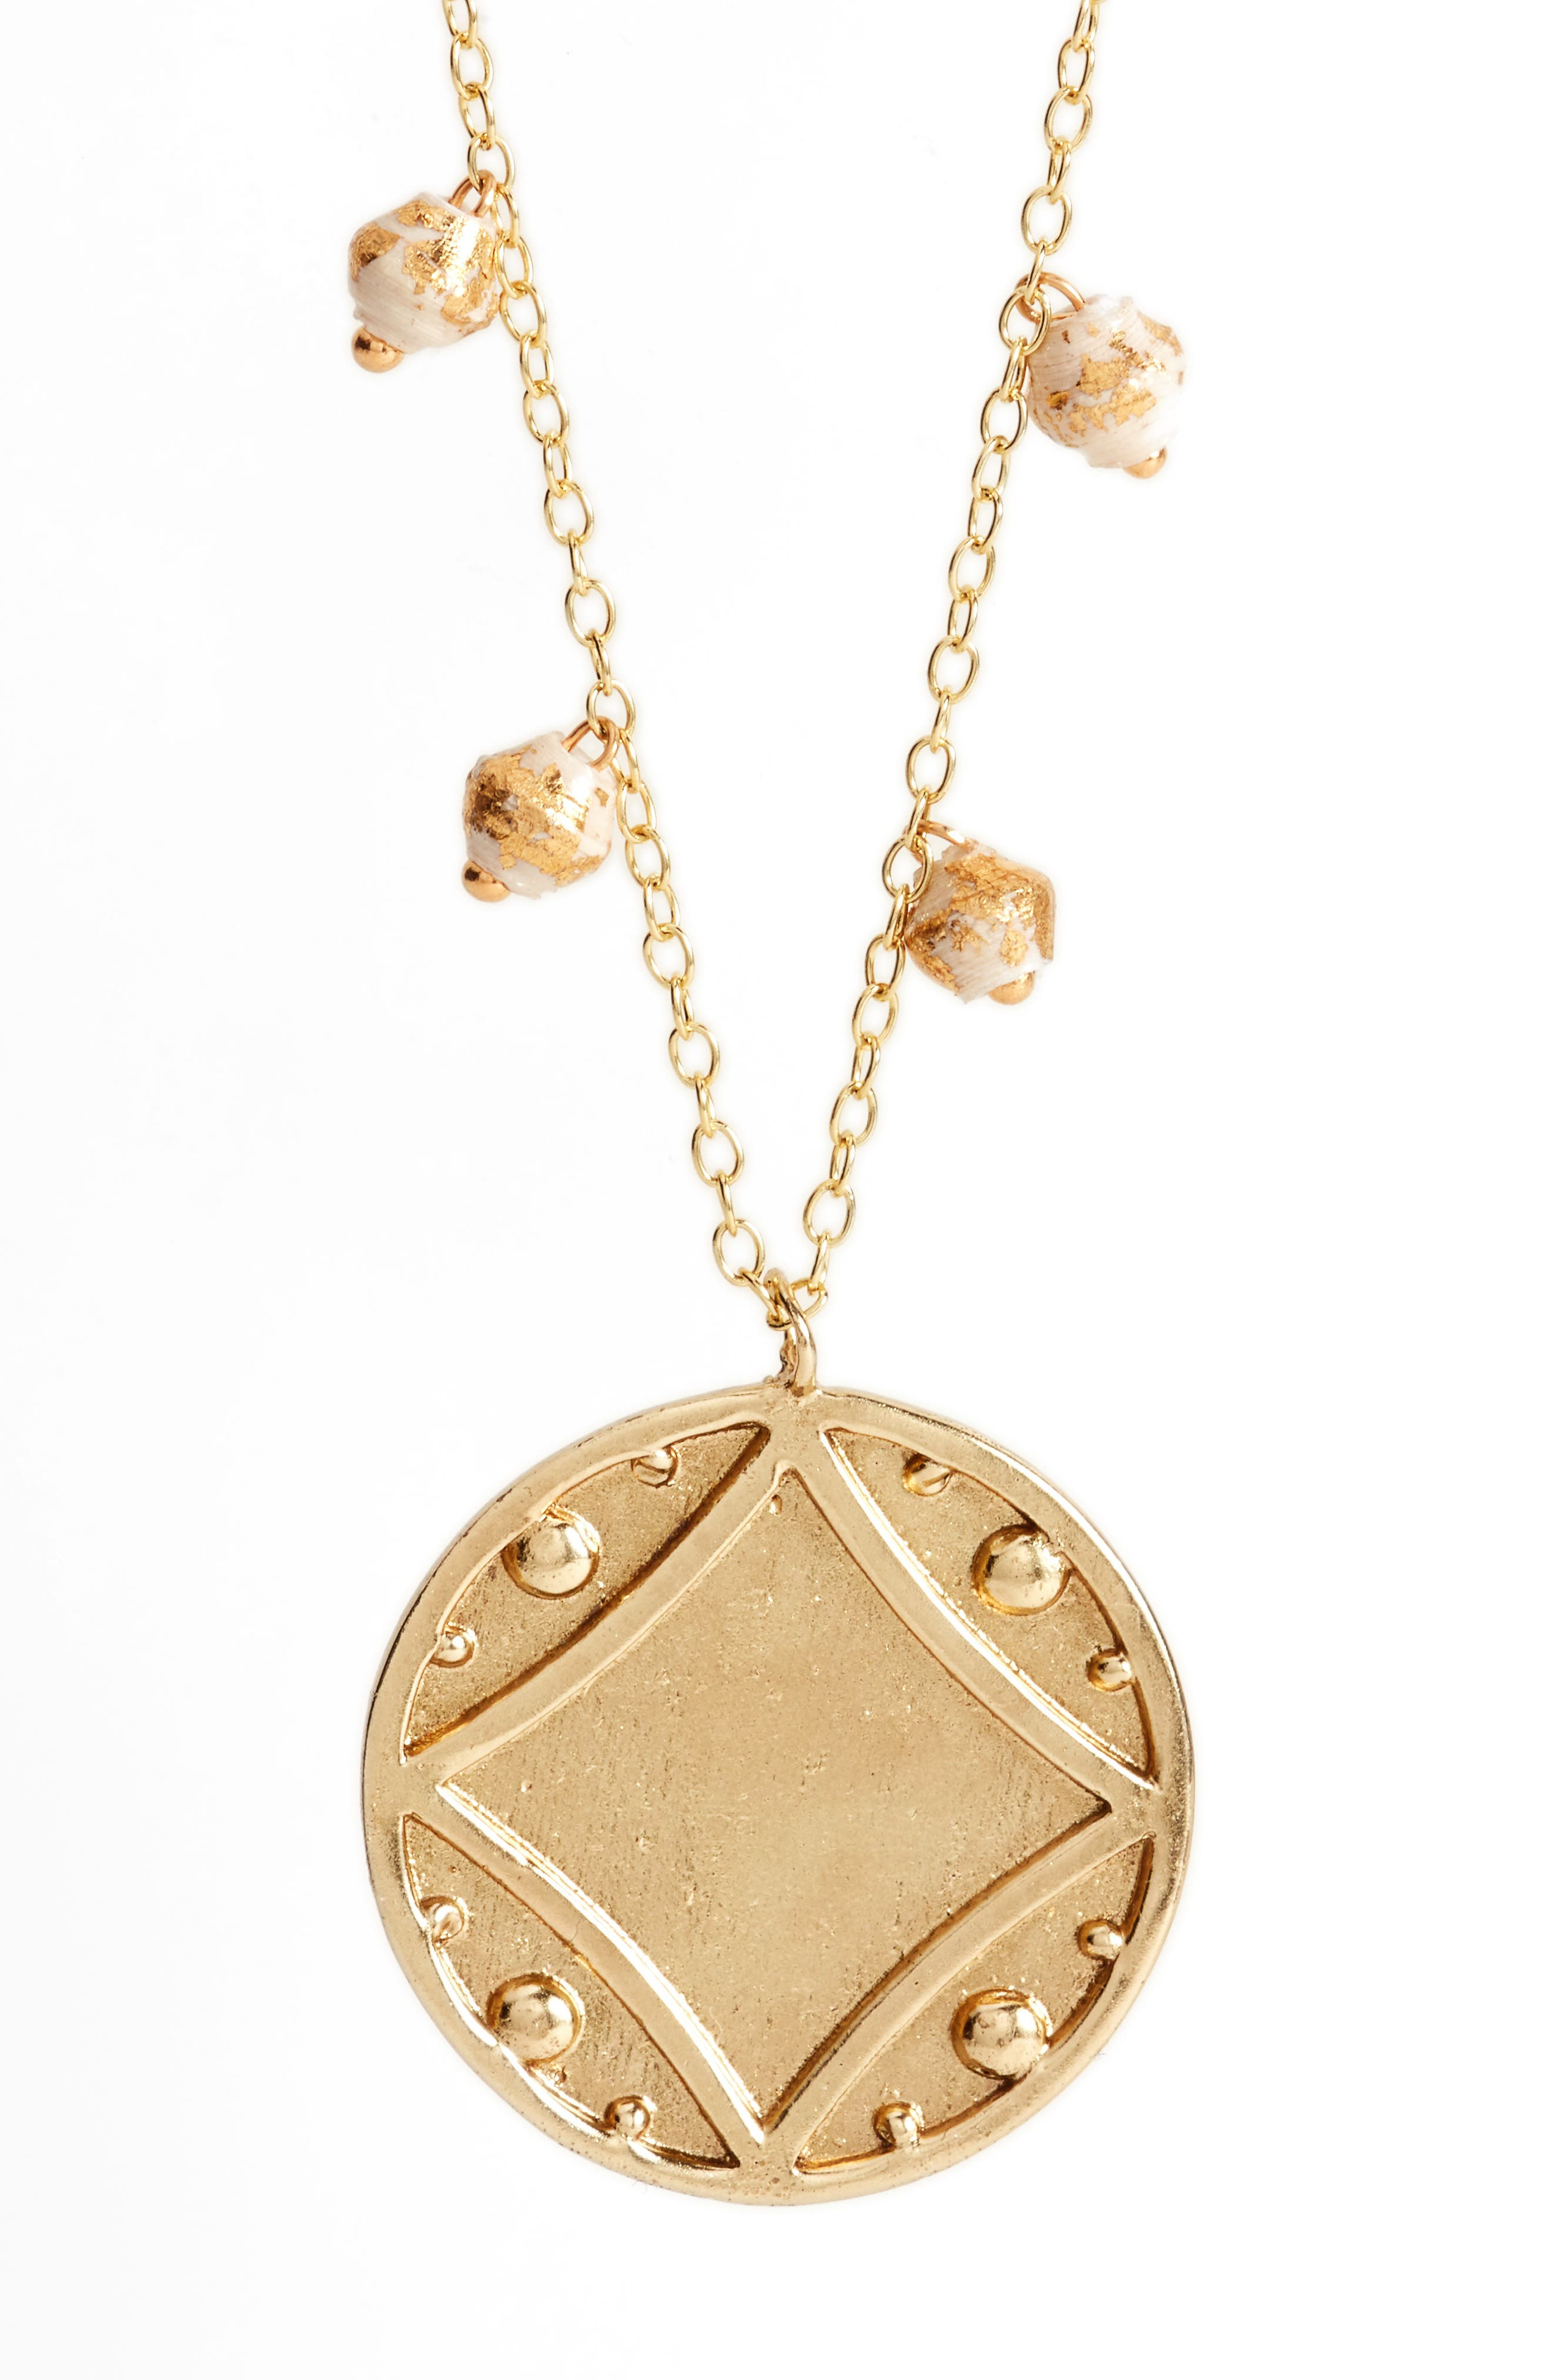 Early Light Pendant Necklace,                             Alternate thumbnail 3, color,                             Cream/ Gold